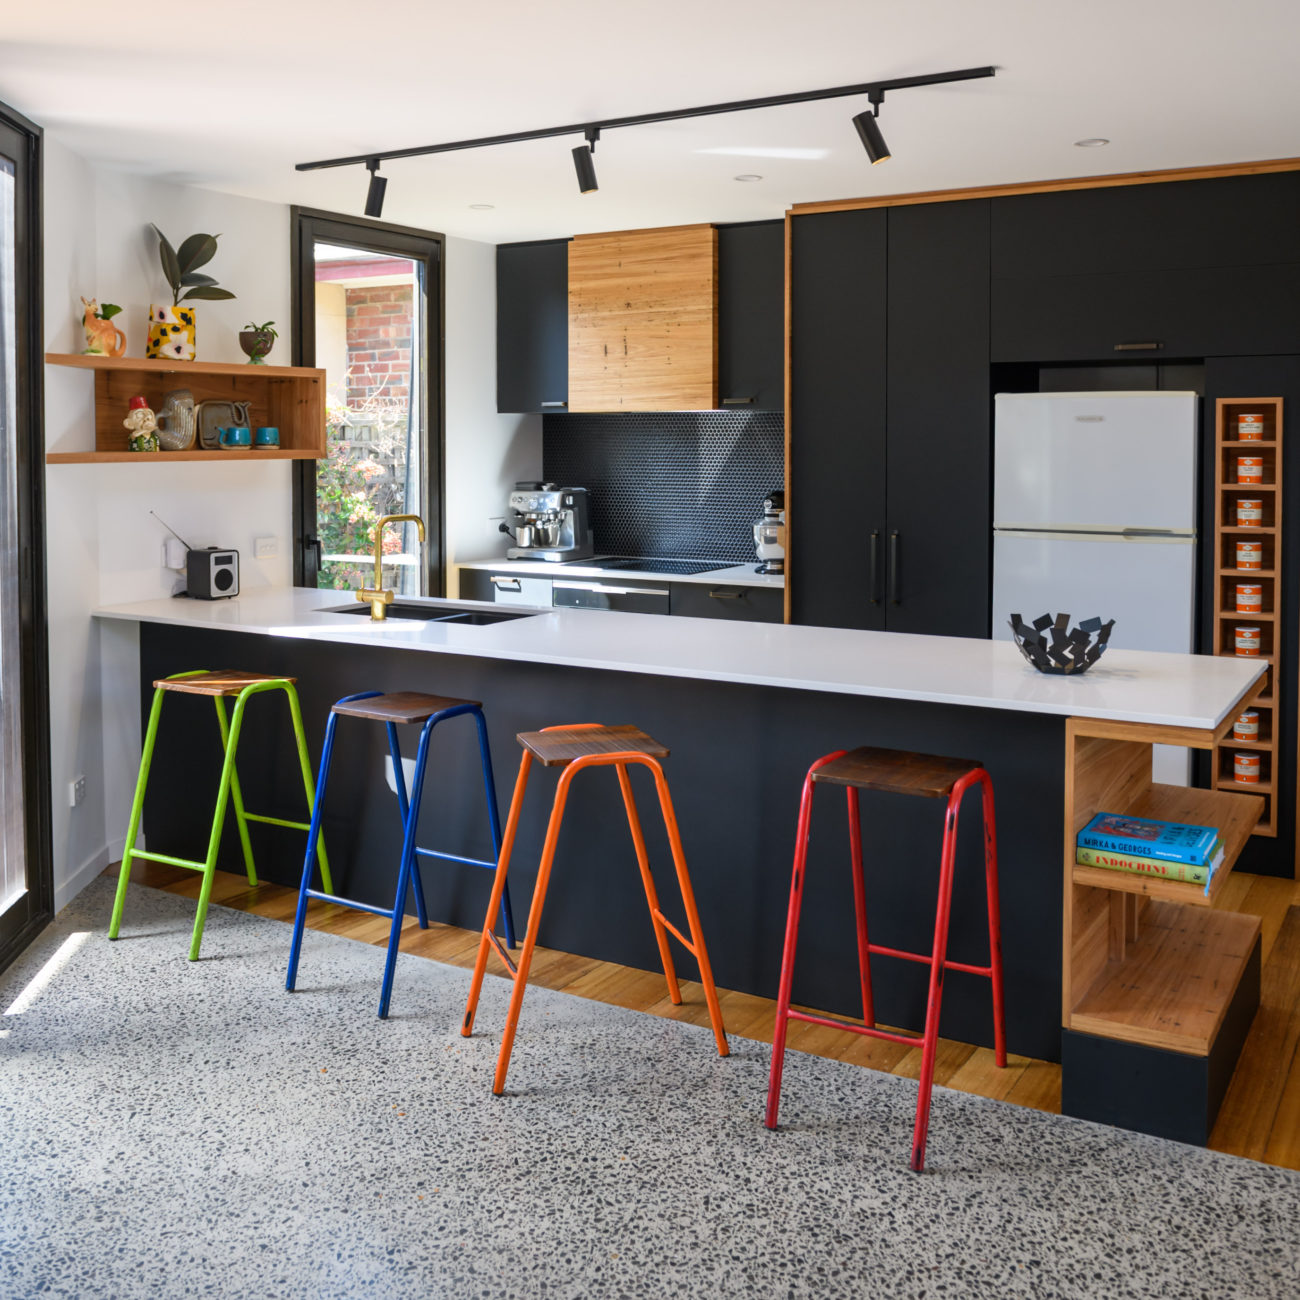 Kitchen Design Melbourne: Kitchen Design Melbourne